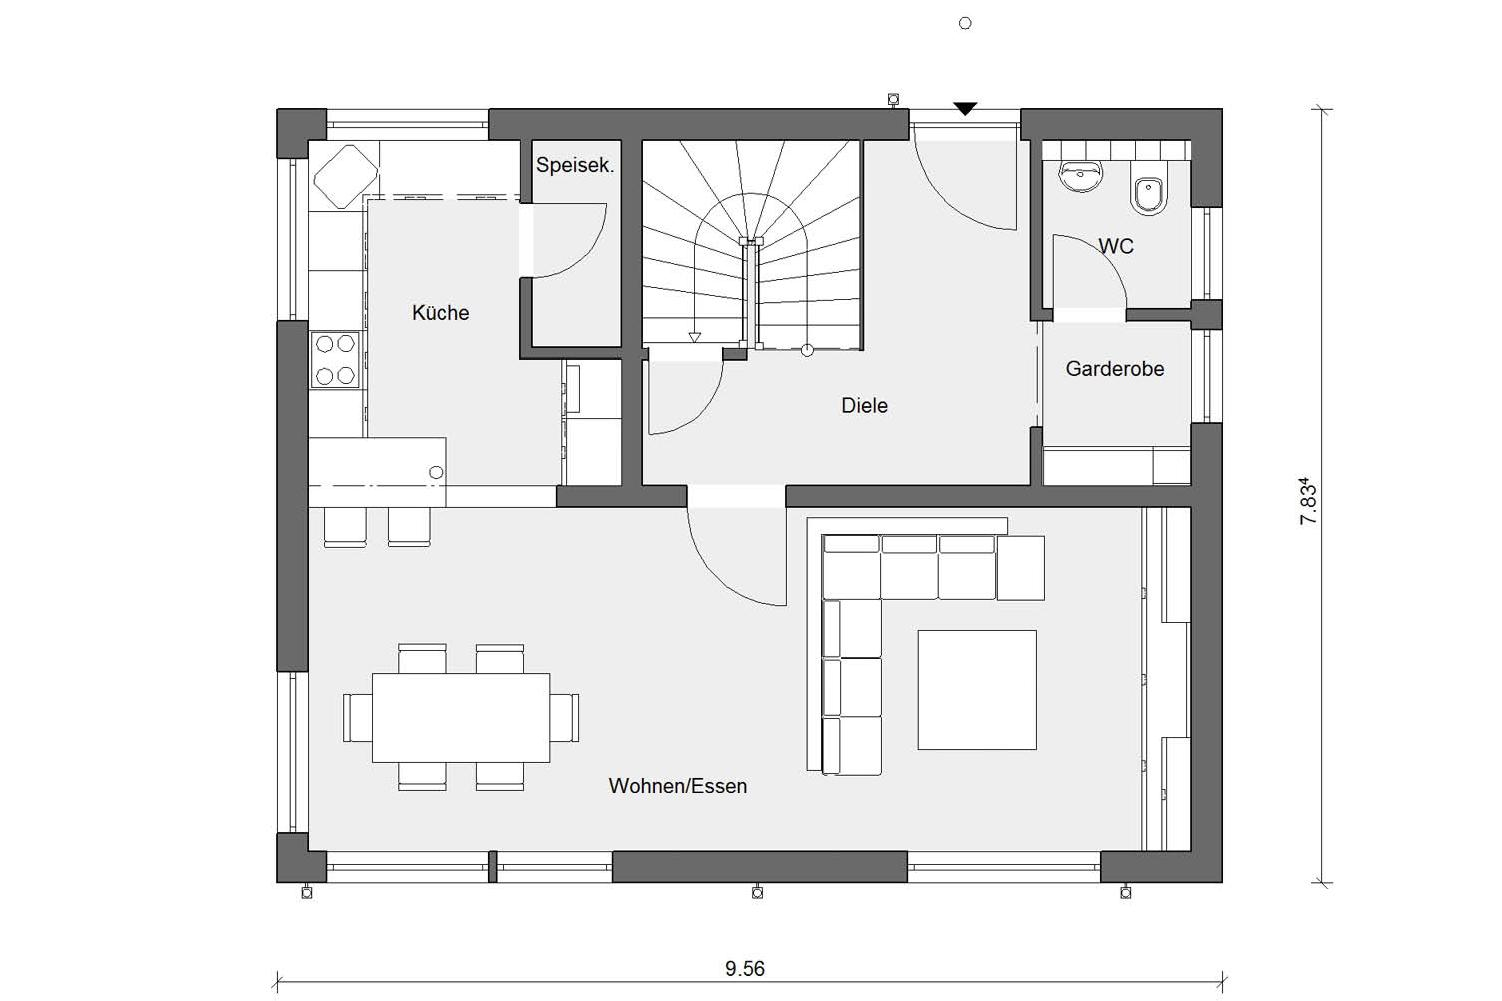 Ground floor floorplan E 15-123.4 compact single-family dwelling